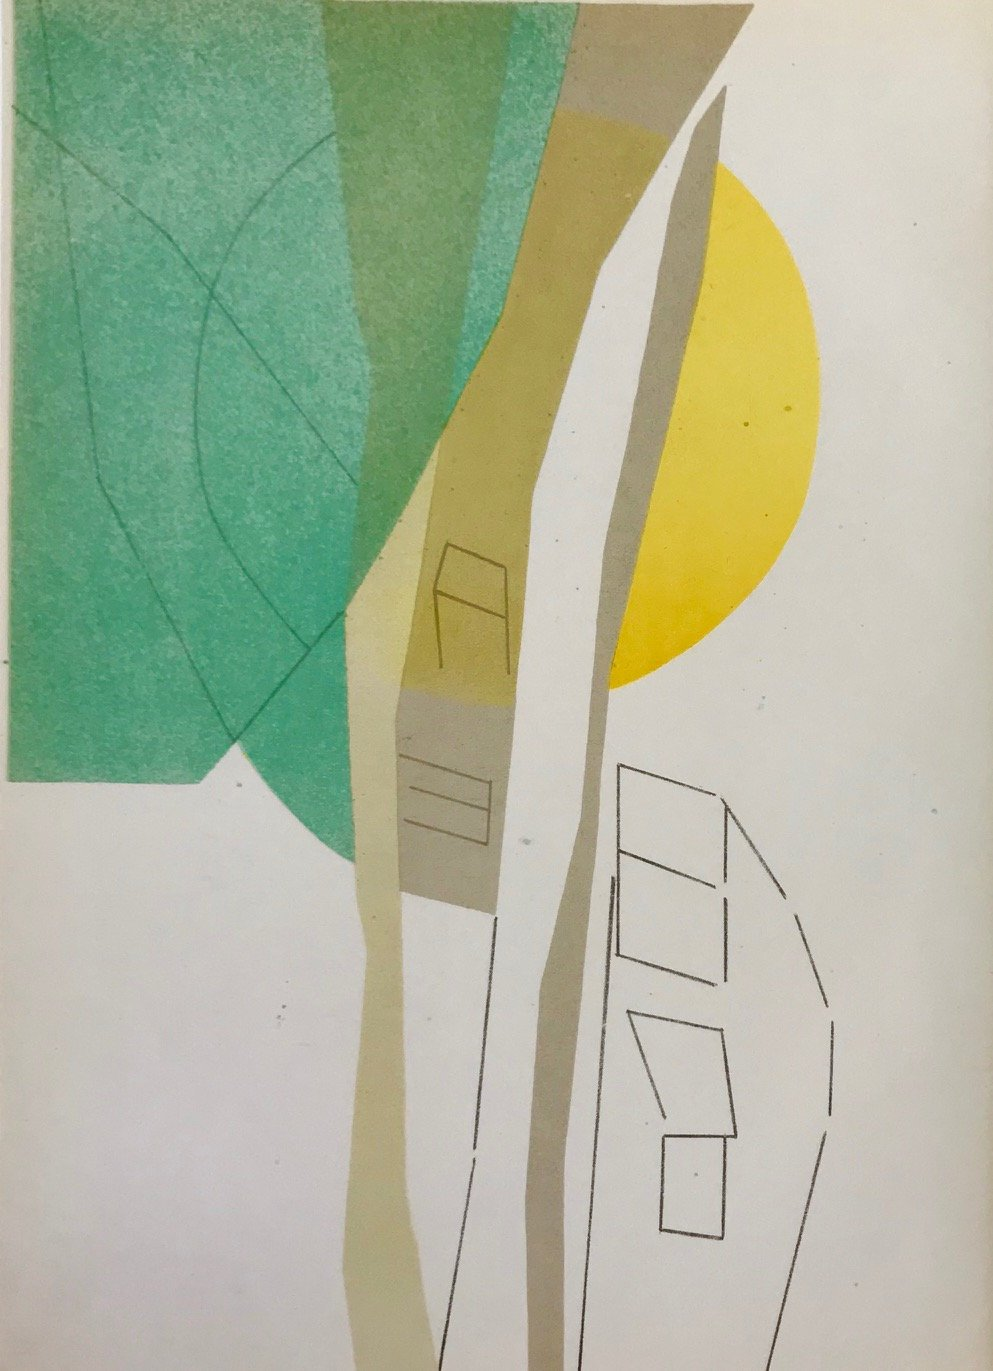 Andre Beaudin Original Lithograph 5, 1961